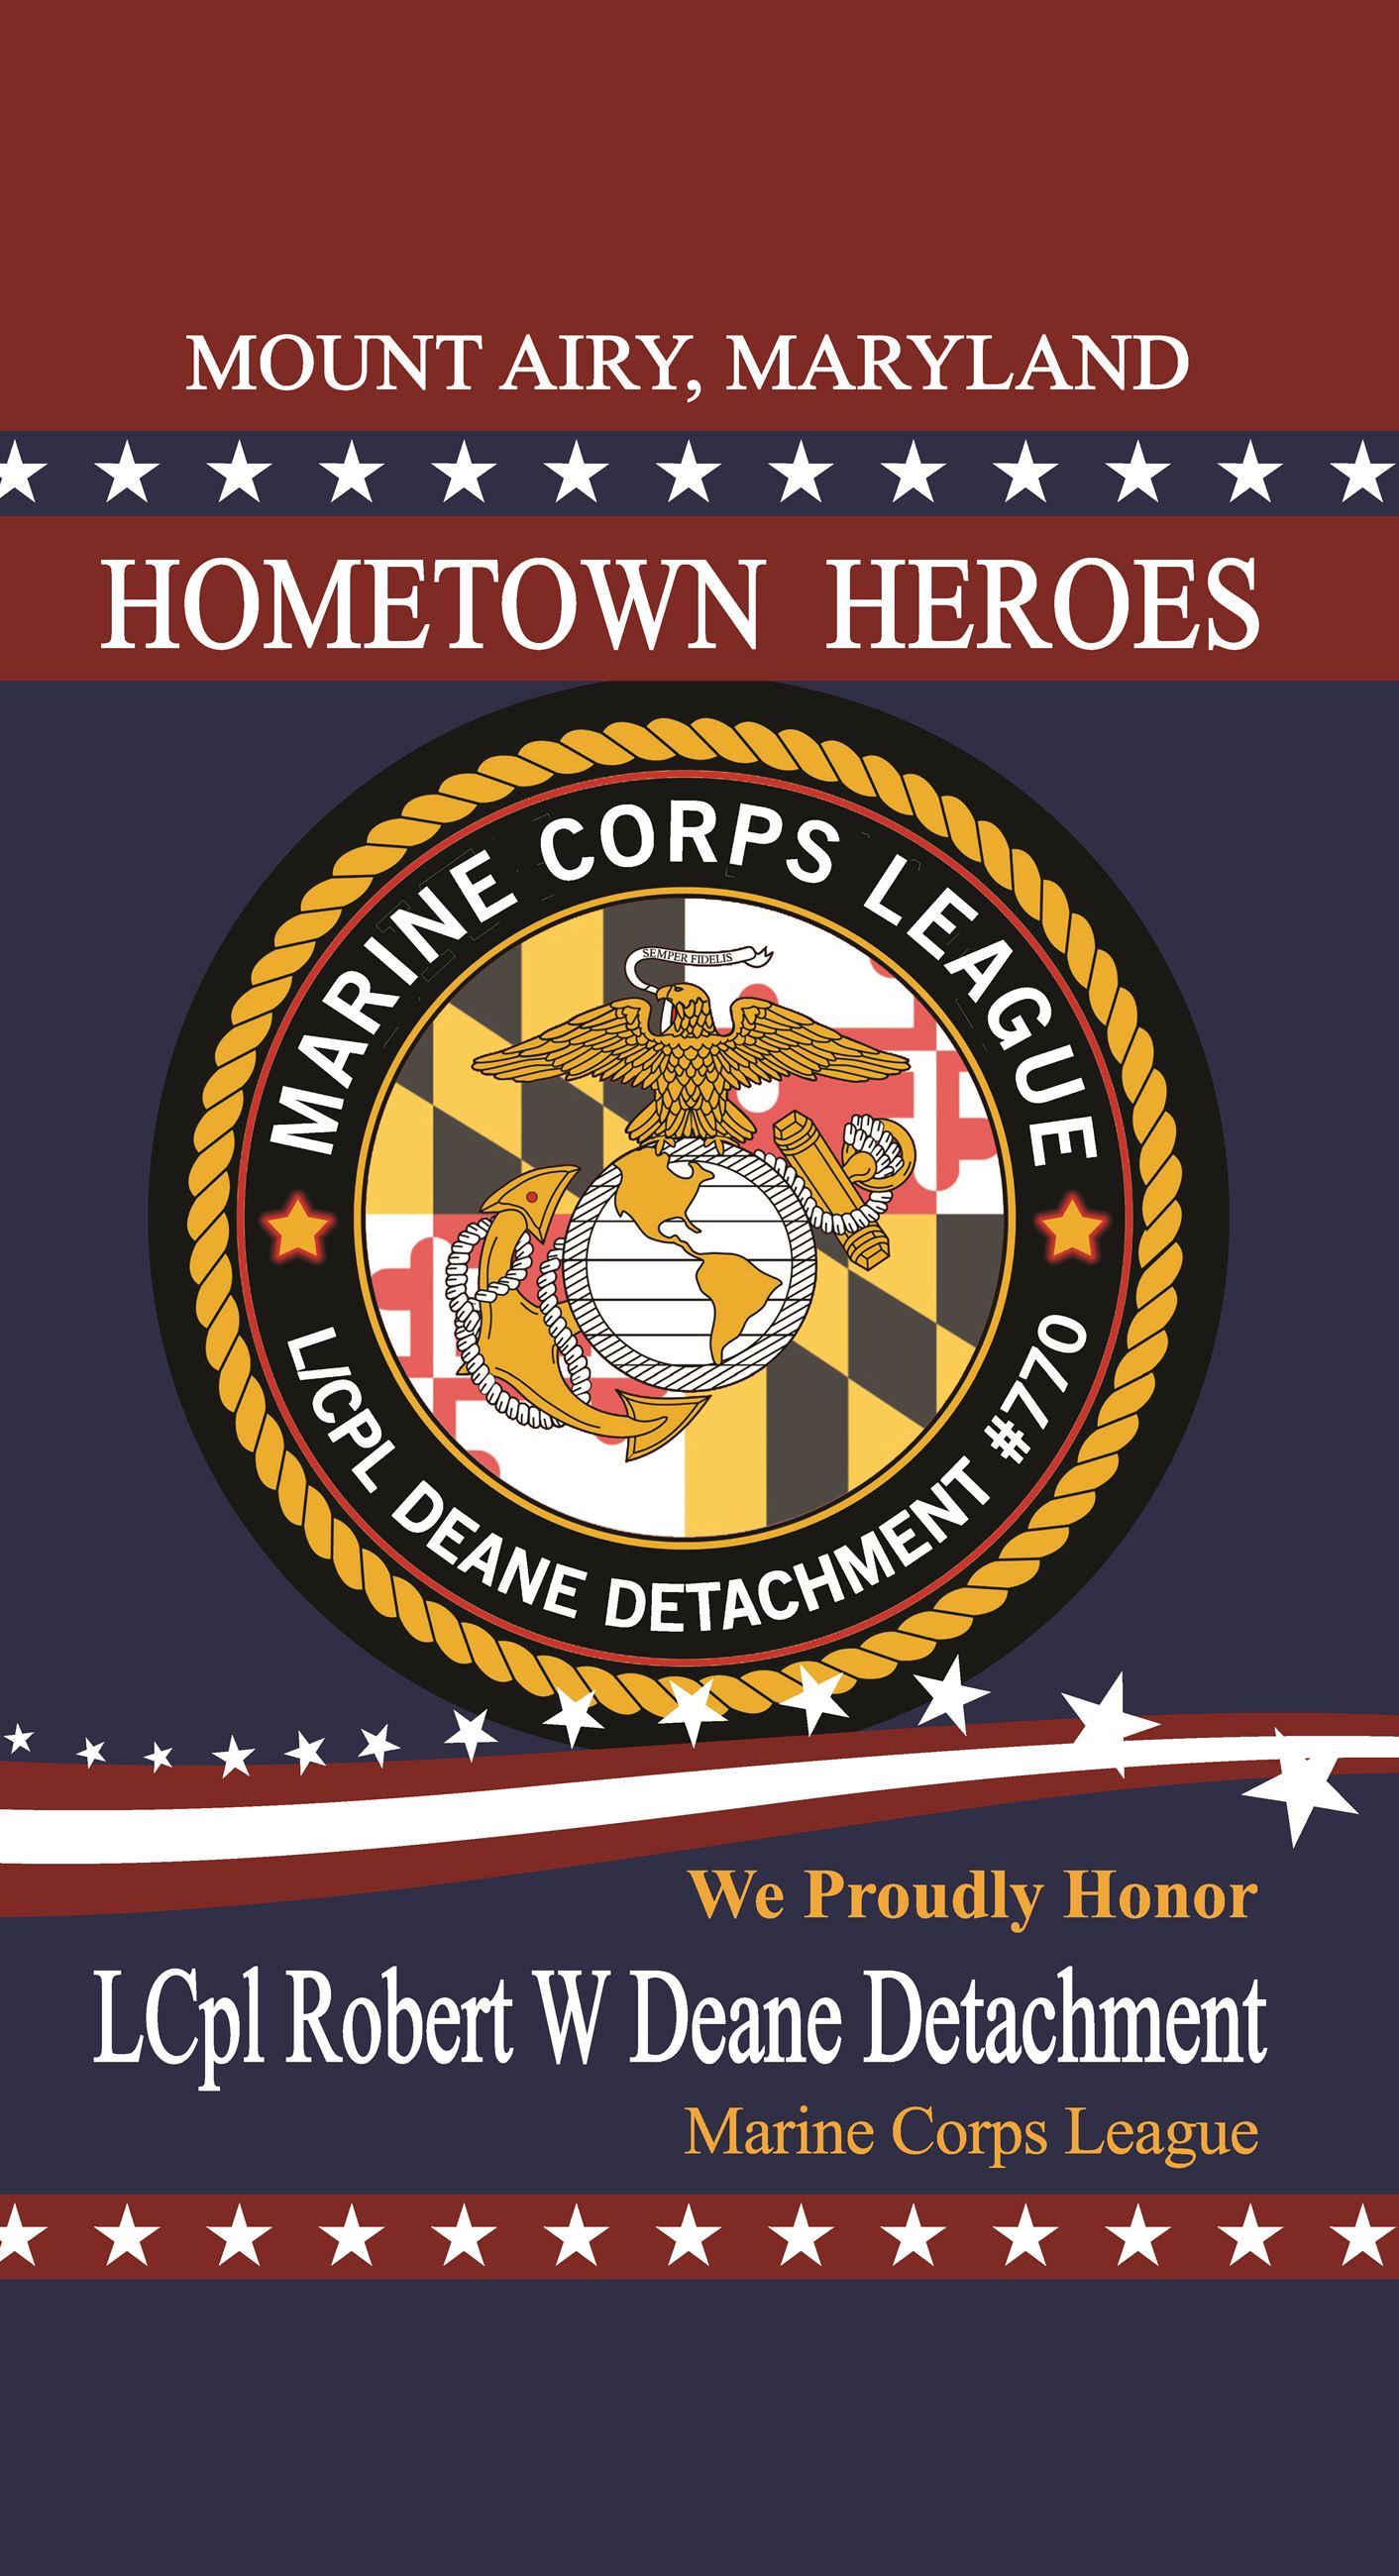 RobertWDeaneDetachment_MtAiryHeroes-Flag-24x44-Proof001